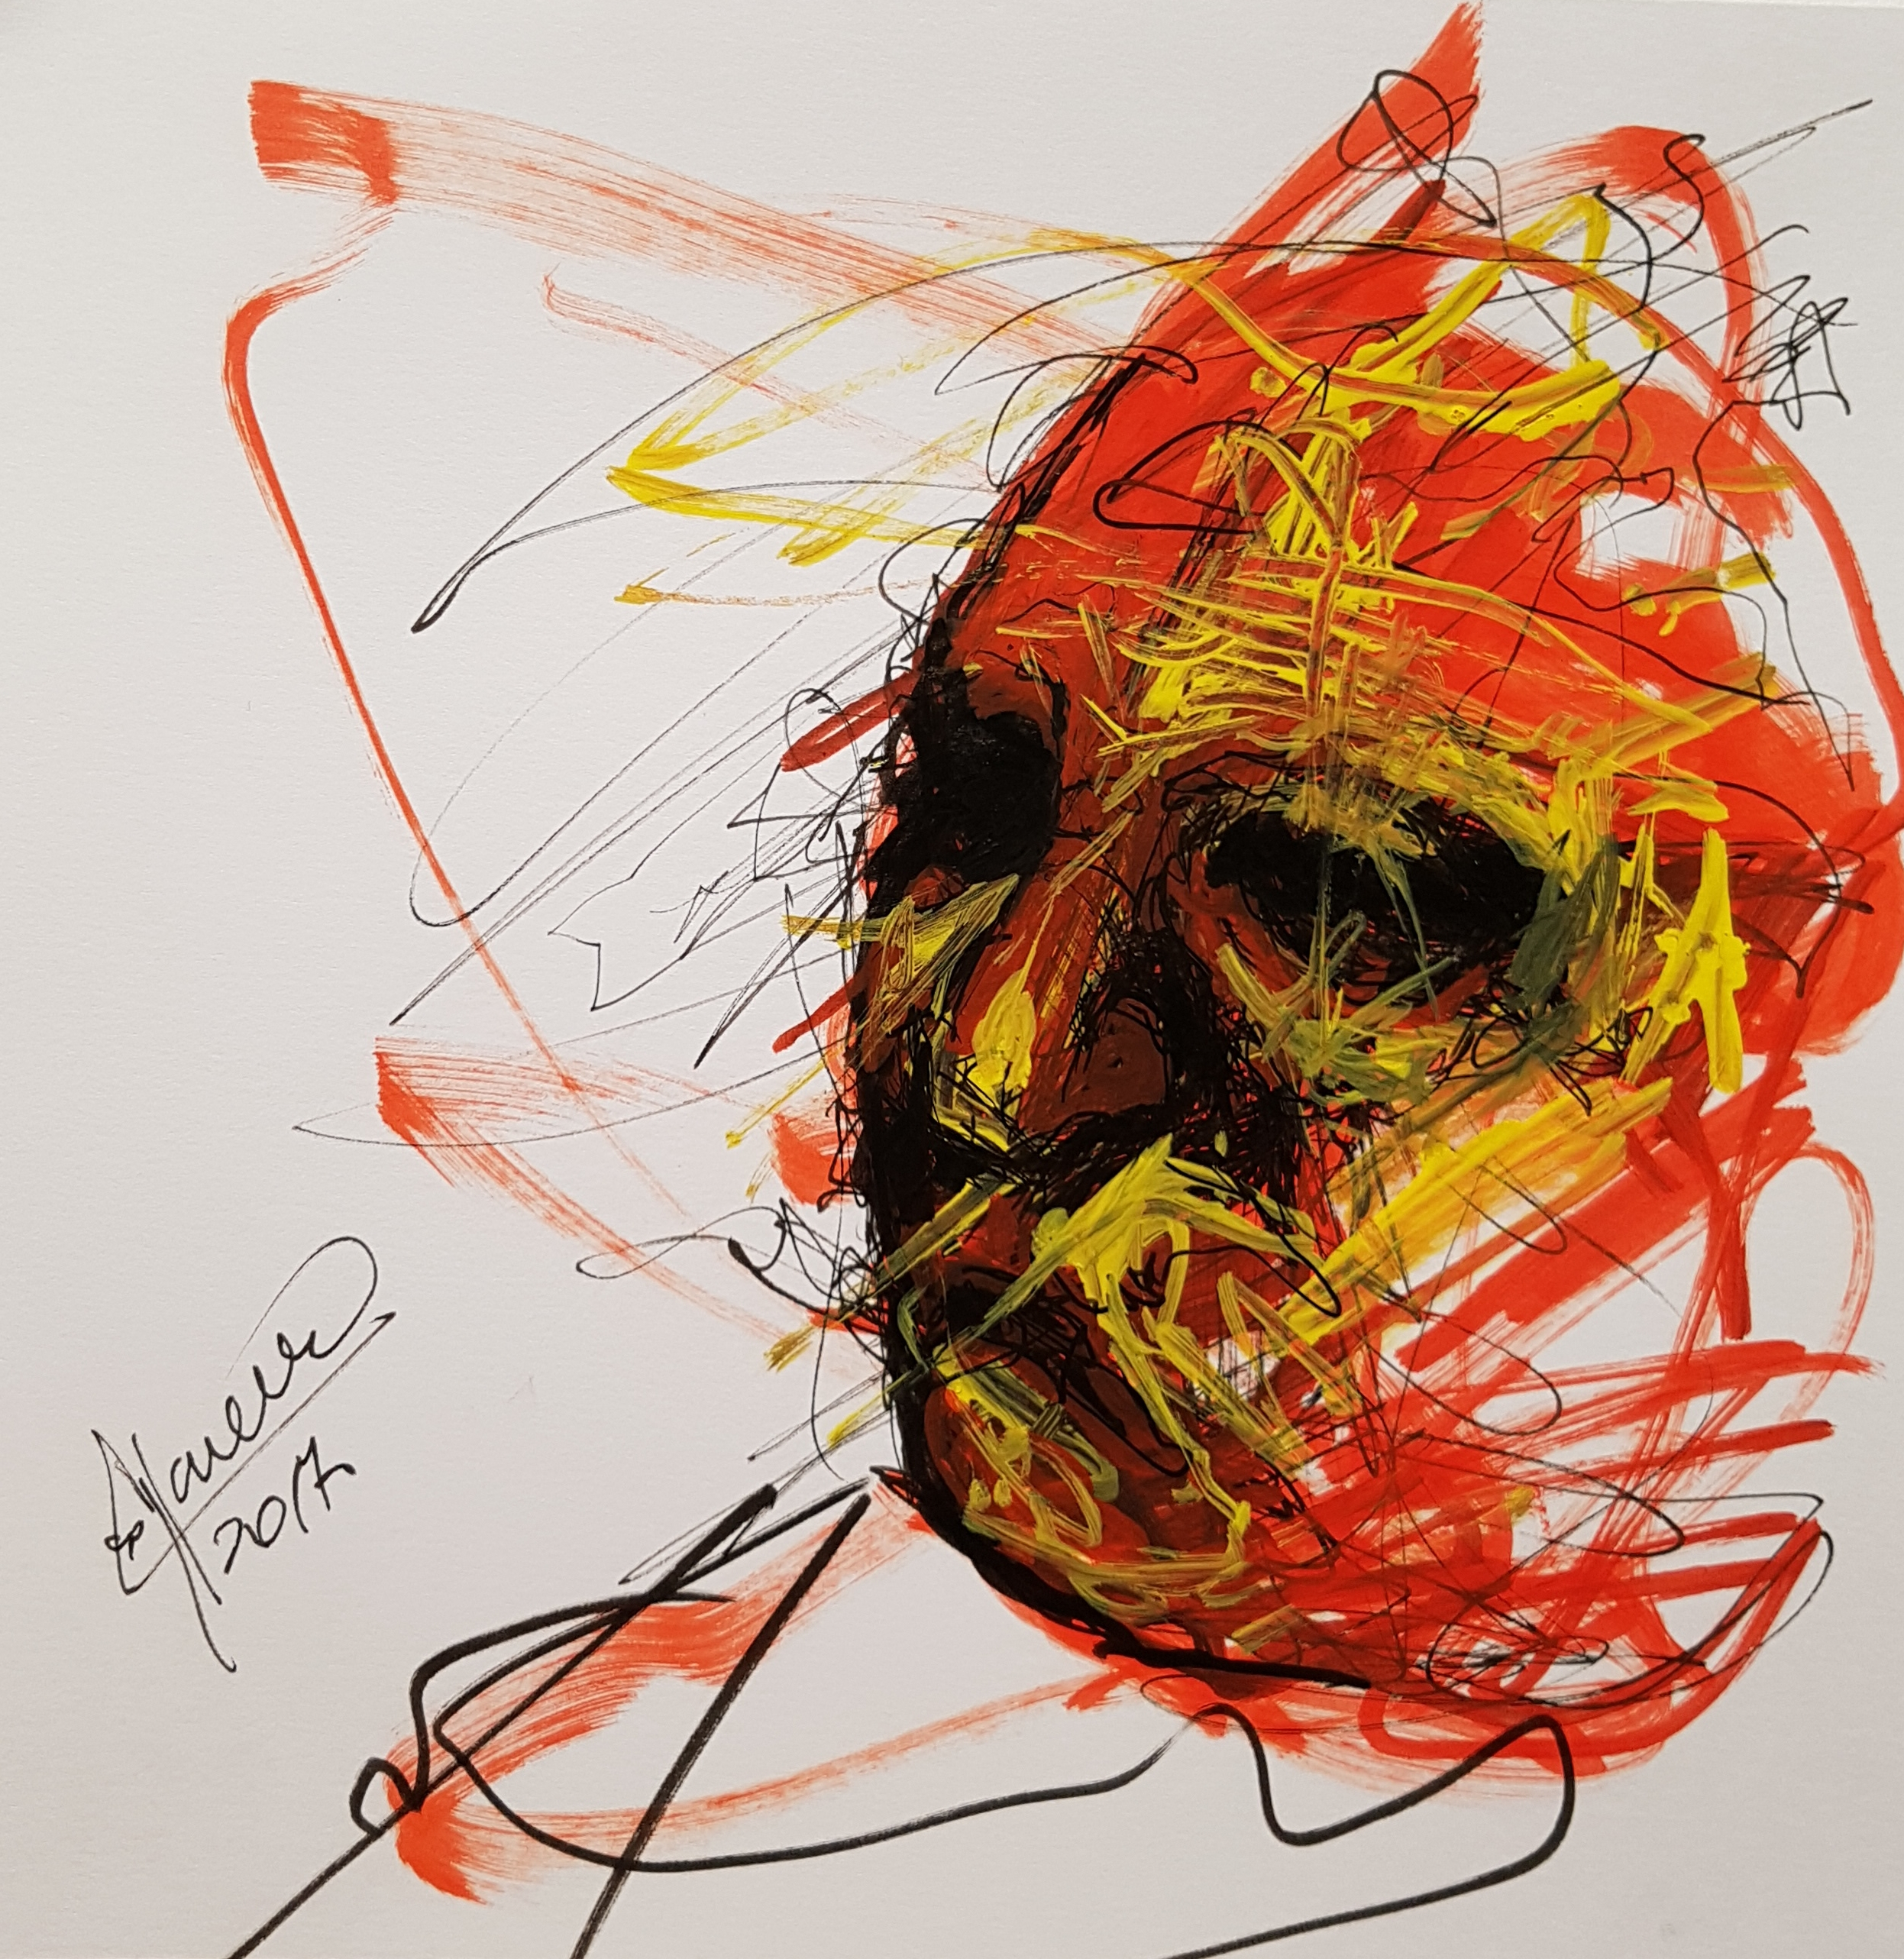 abstract drawing of face, sketch on marker